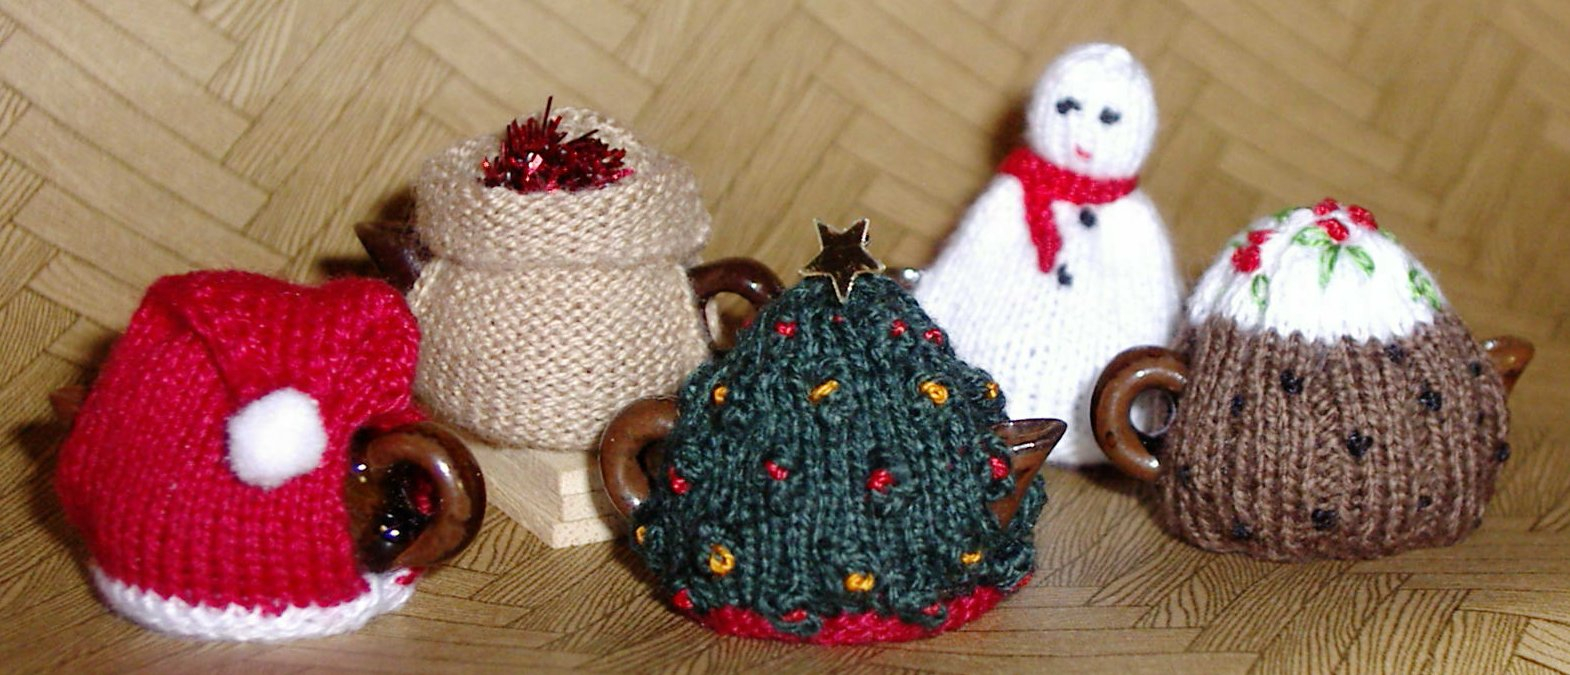 Tea Cosy Knitting Patterns Easy Knitting Patterns For Tea Cosy Patterns Gallery